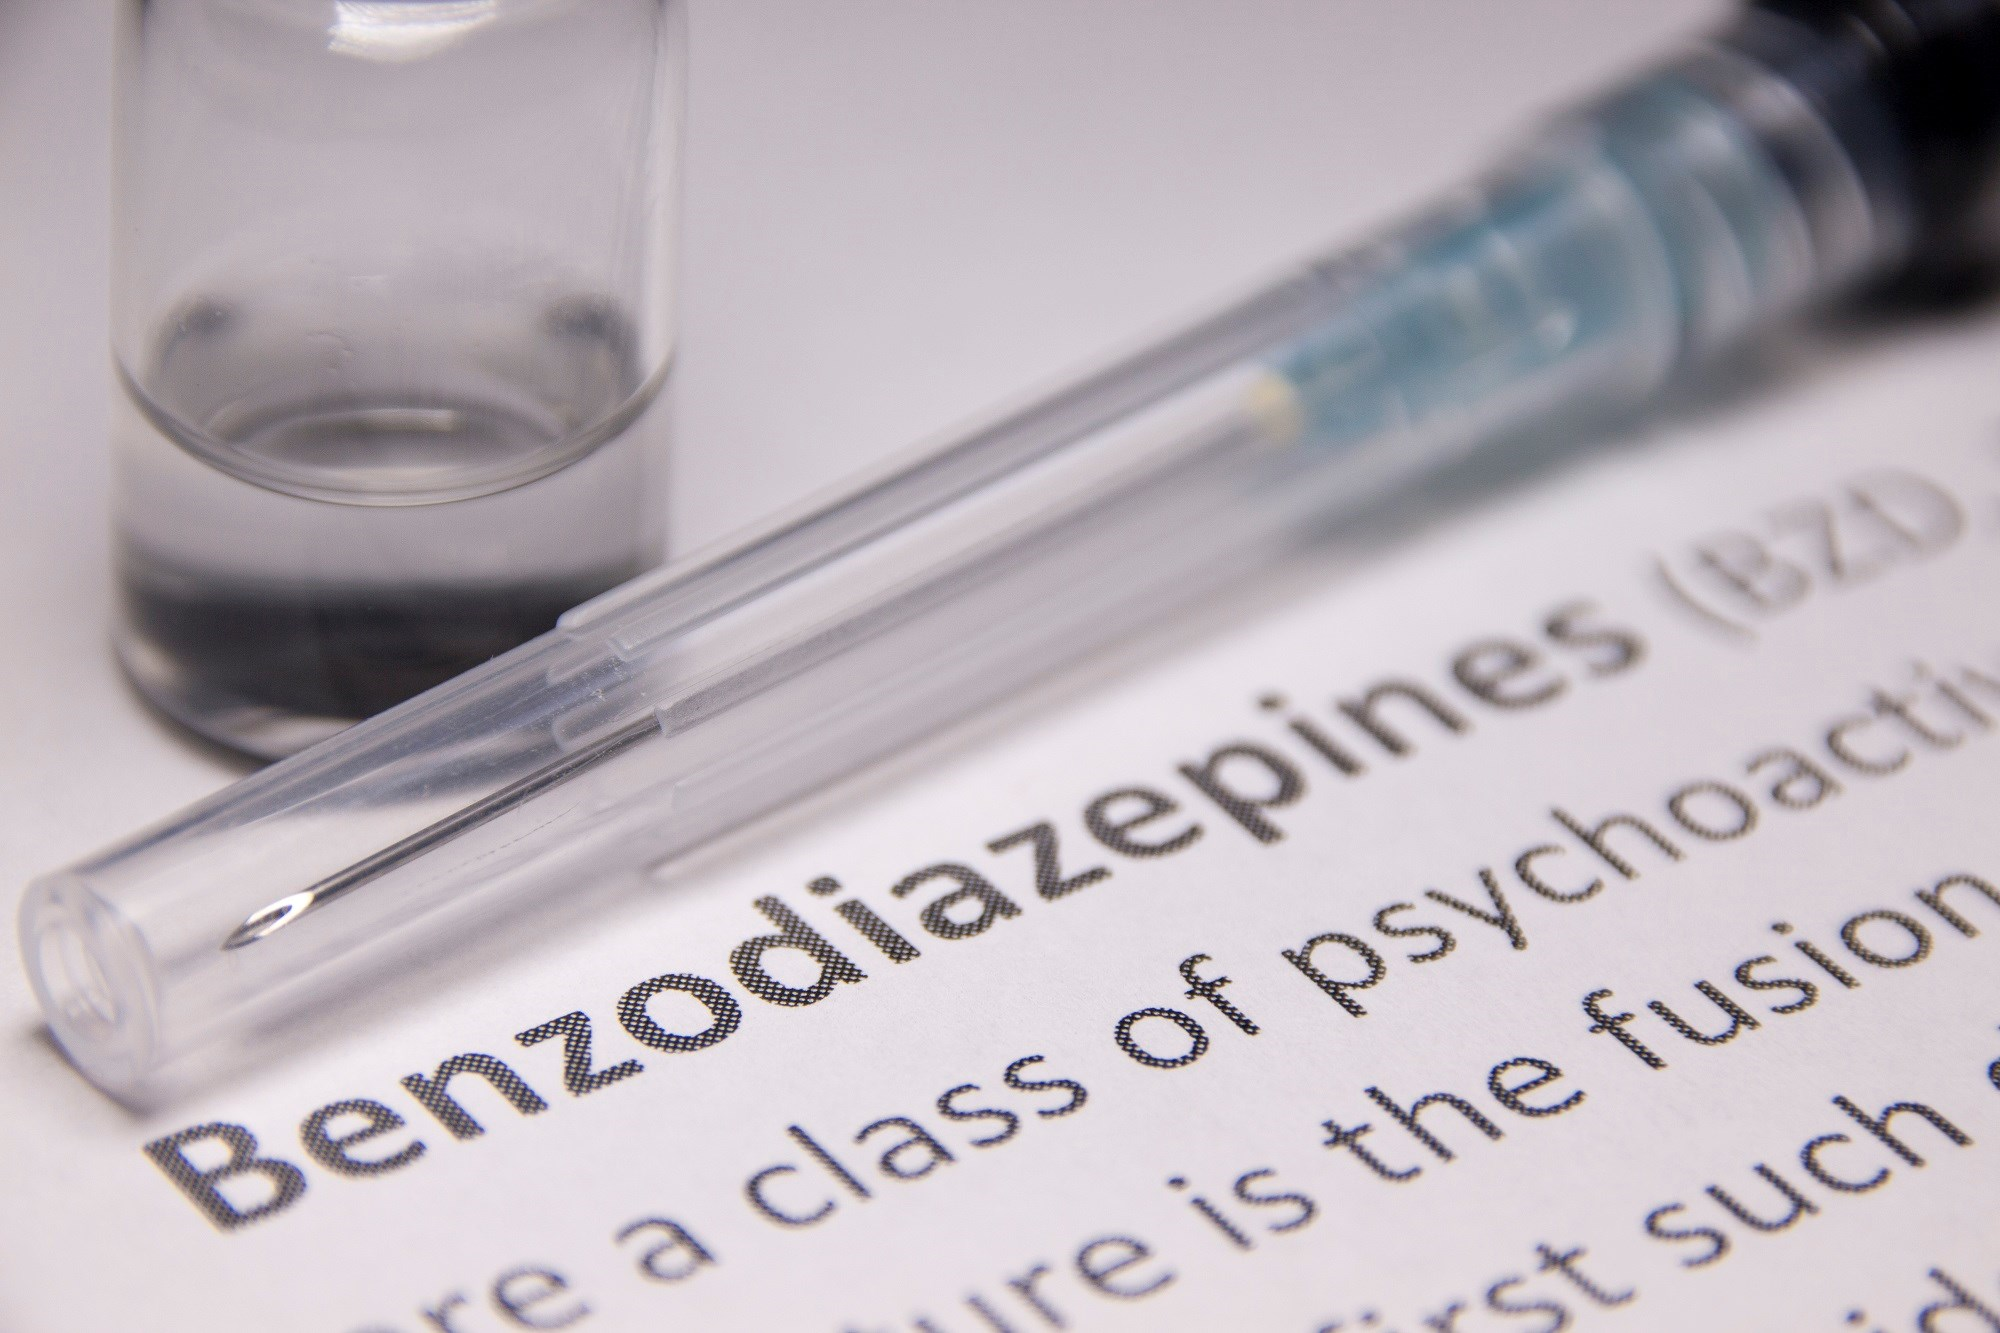 Risk for Overdose Highest During First Days of Opioid Plus Benzodiazepine Use